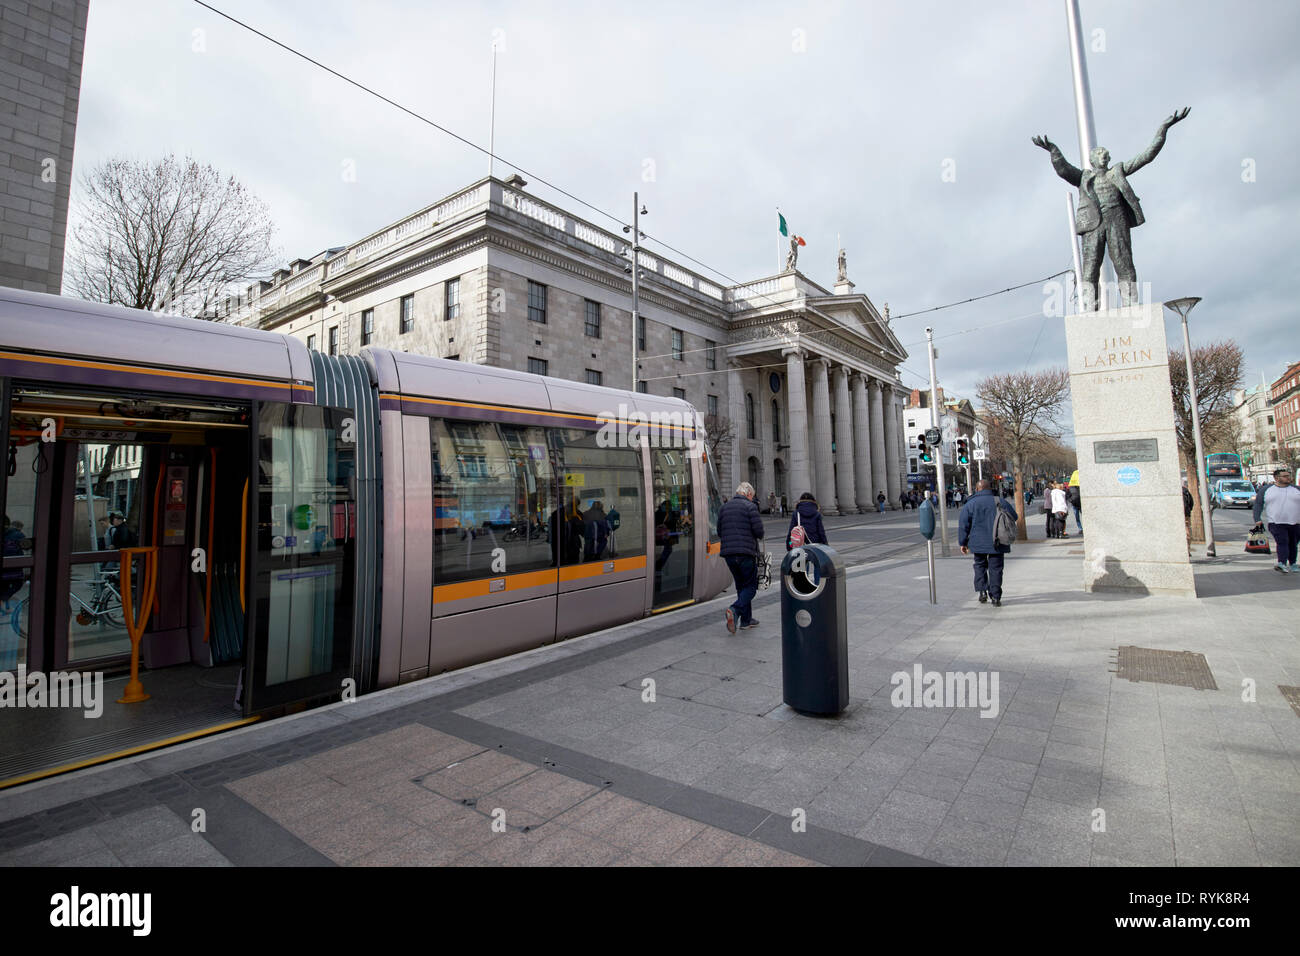 Luas the GPO and Jim Larkin statue on oconnell street Dublin Republic of Ireland europe - Stock Image